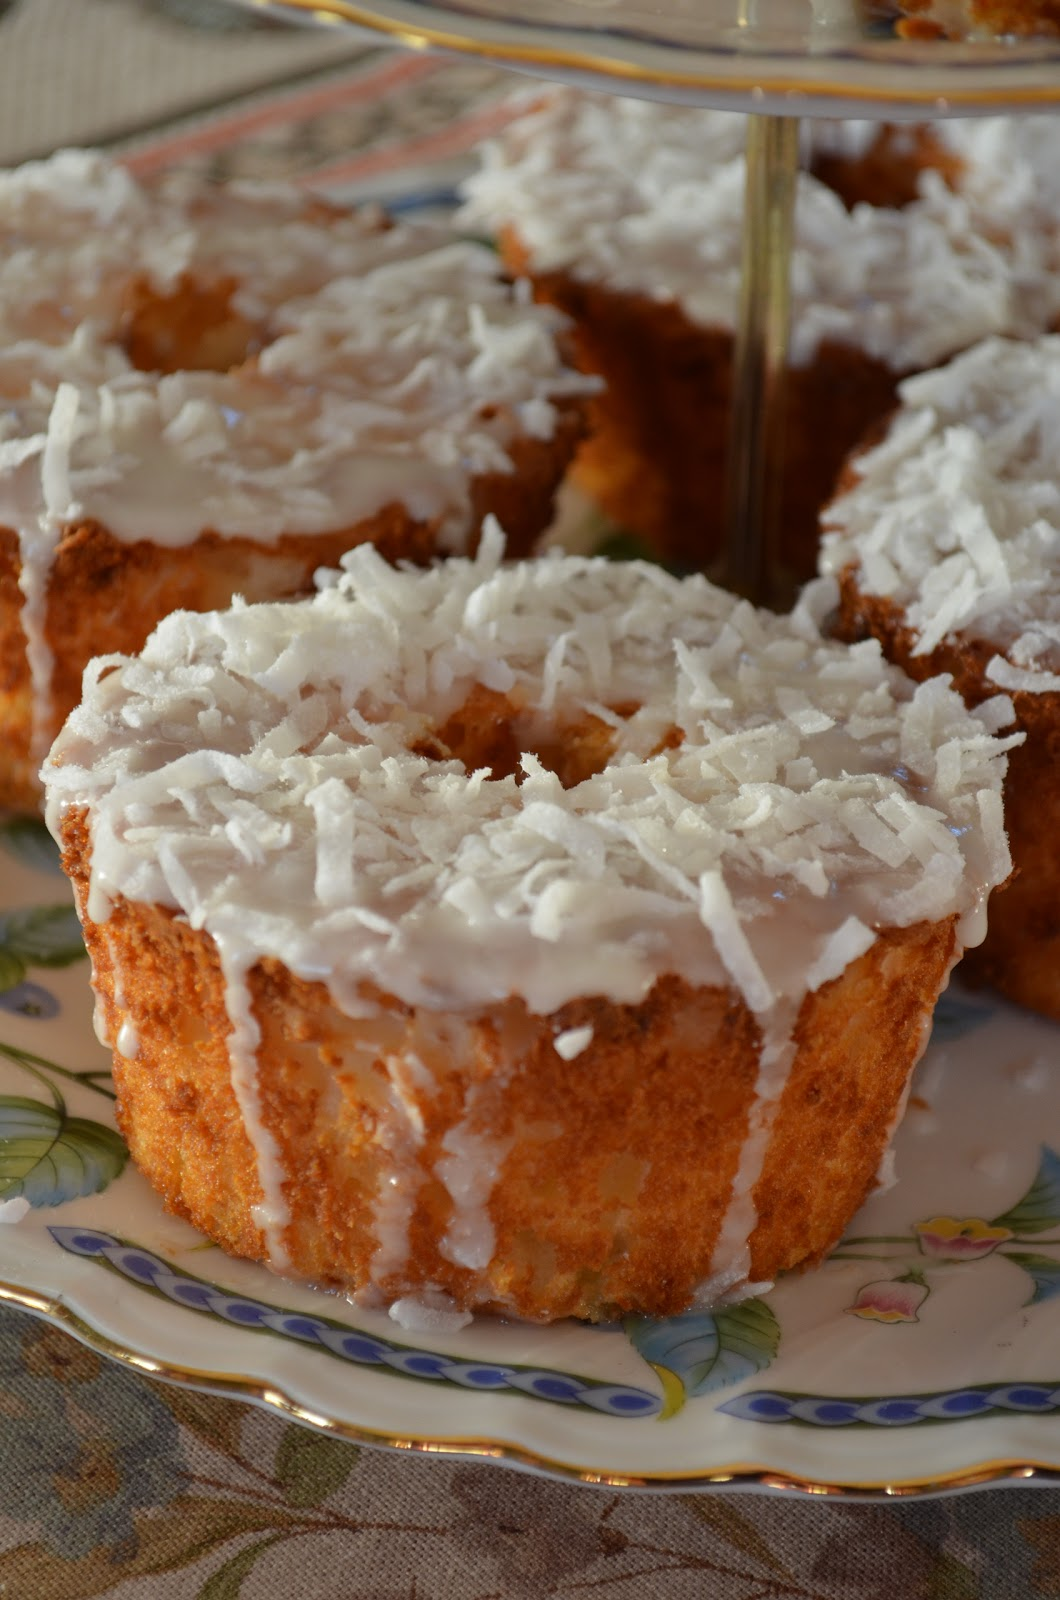 Sheilah S Kitchen Mini Pineapple Coconut Angel Food Cakes